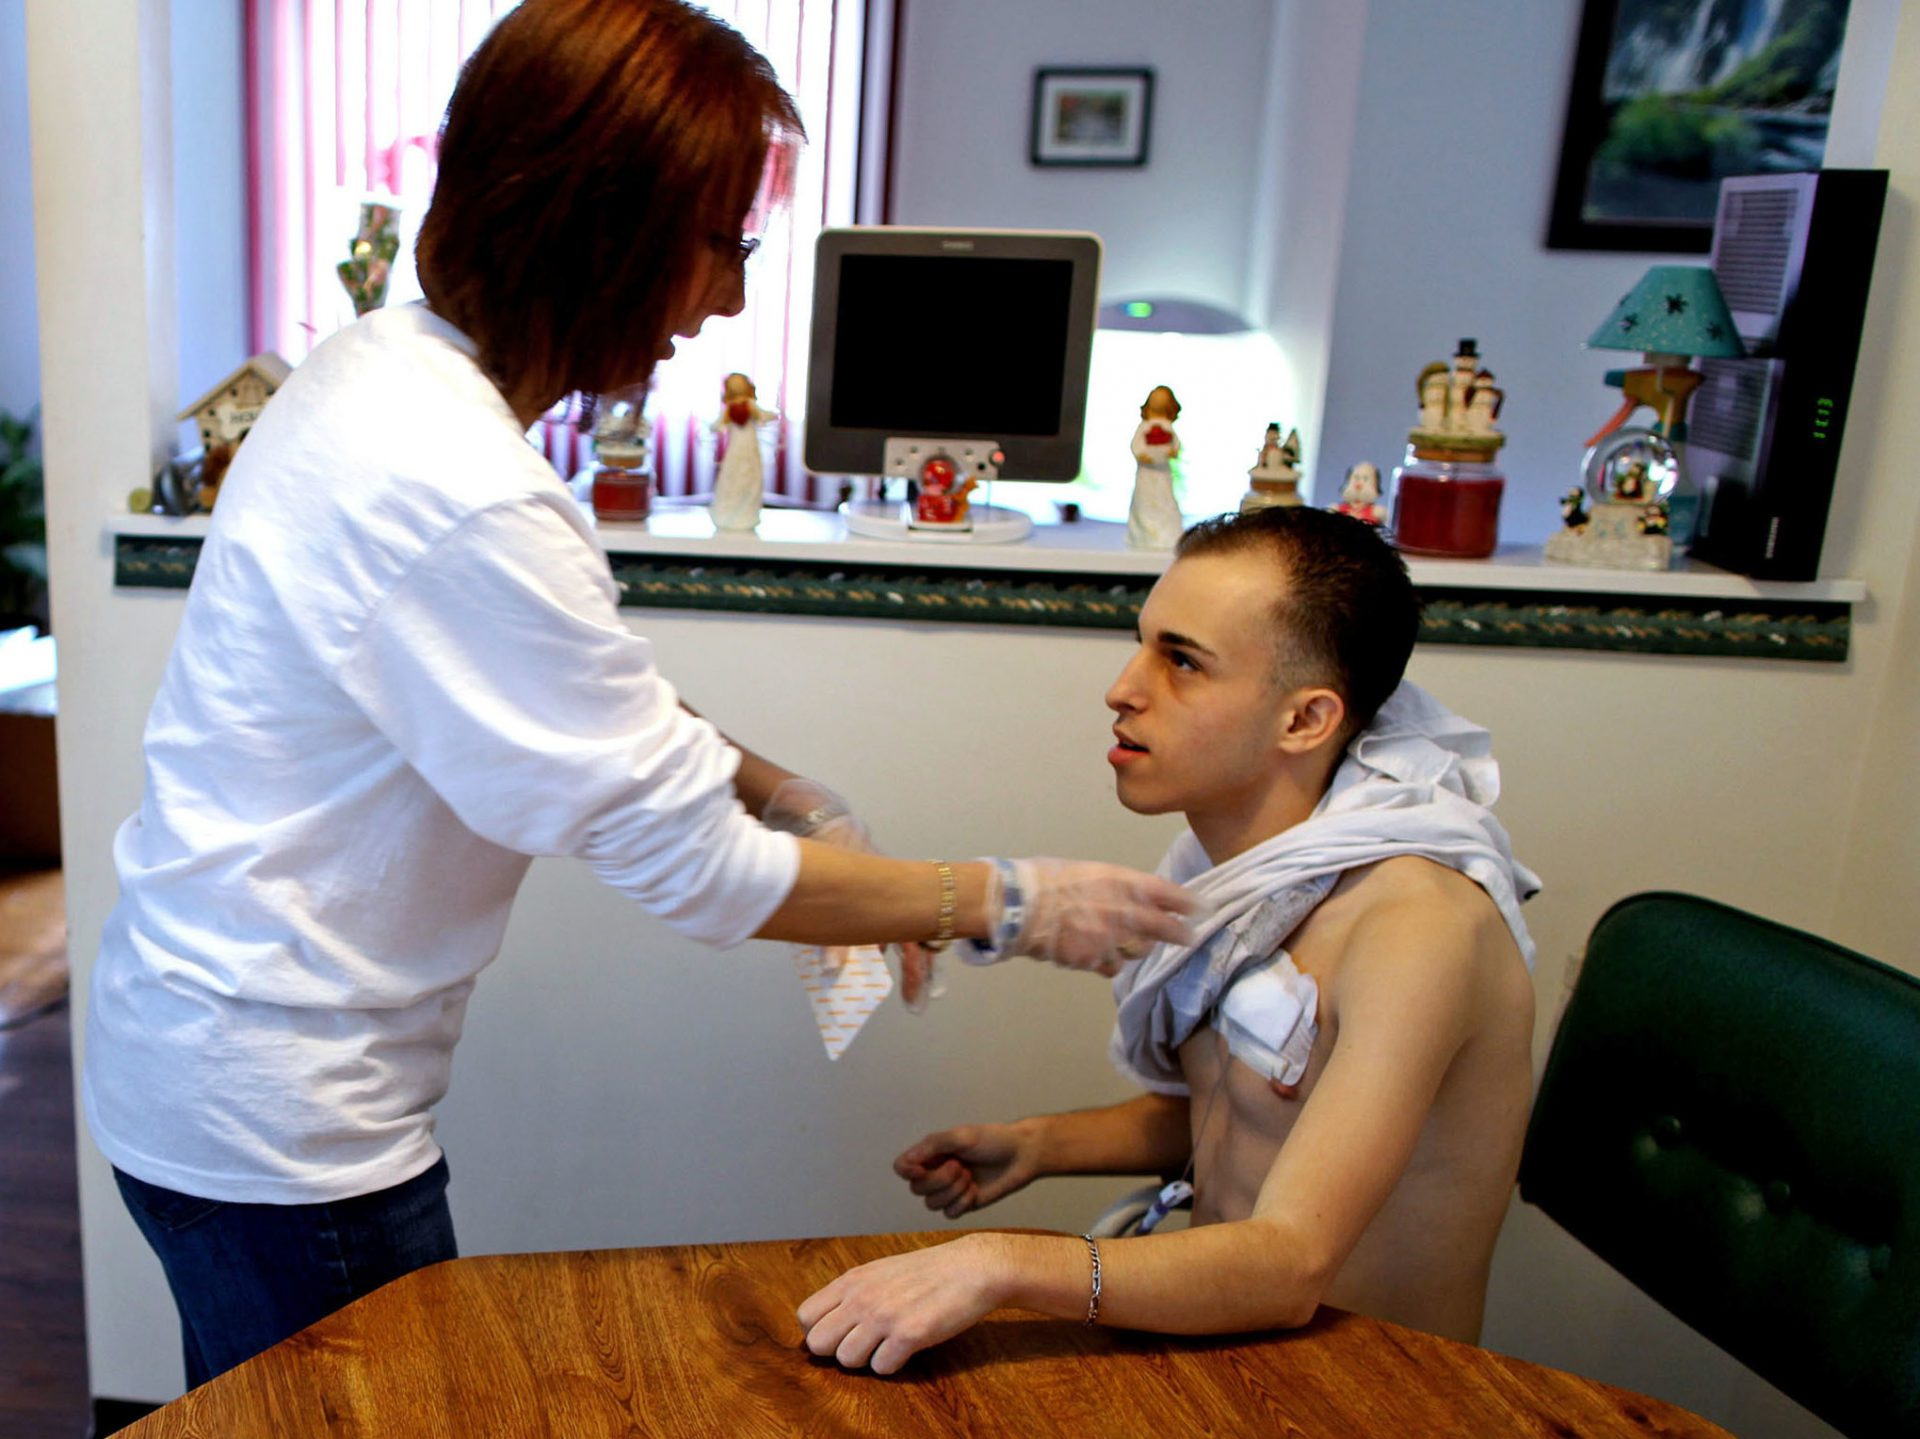 While waiting for a liver transplant in 2011, 21-year-old Matthew Rosiello (shown here getting catheter help from his mom while he was on the waitlist) was advised by his doctors to relocate from New York to Ohio — where the wait would be shorter. Indeed, in 2012 Rosiello received a liver transplant in Cleveland.